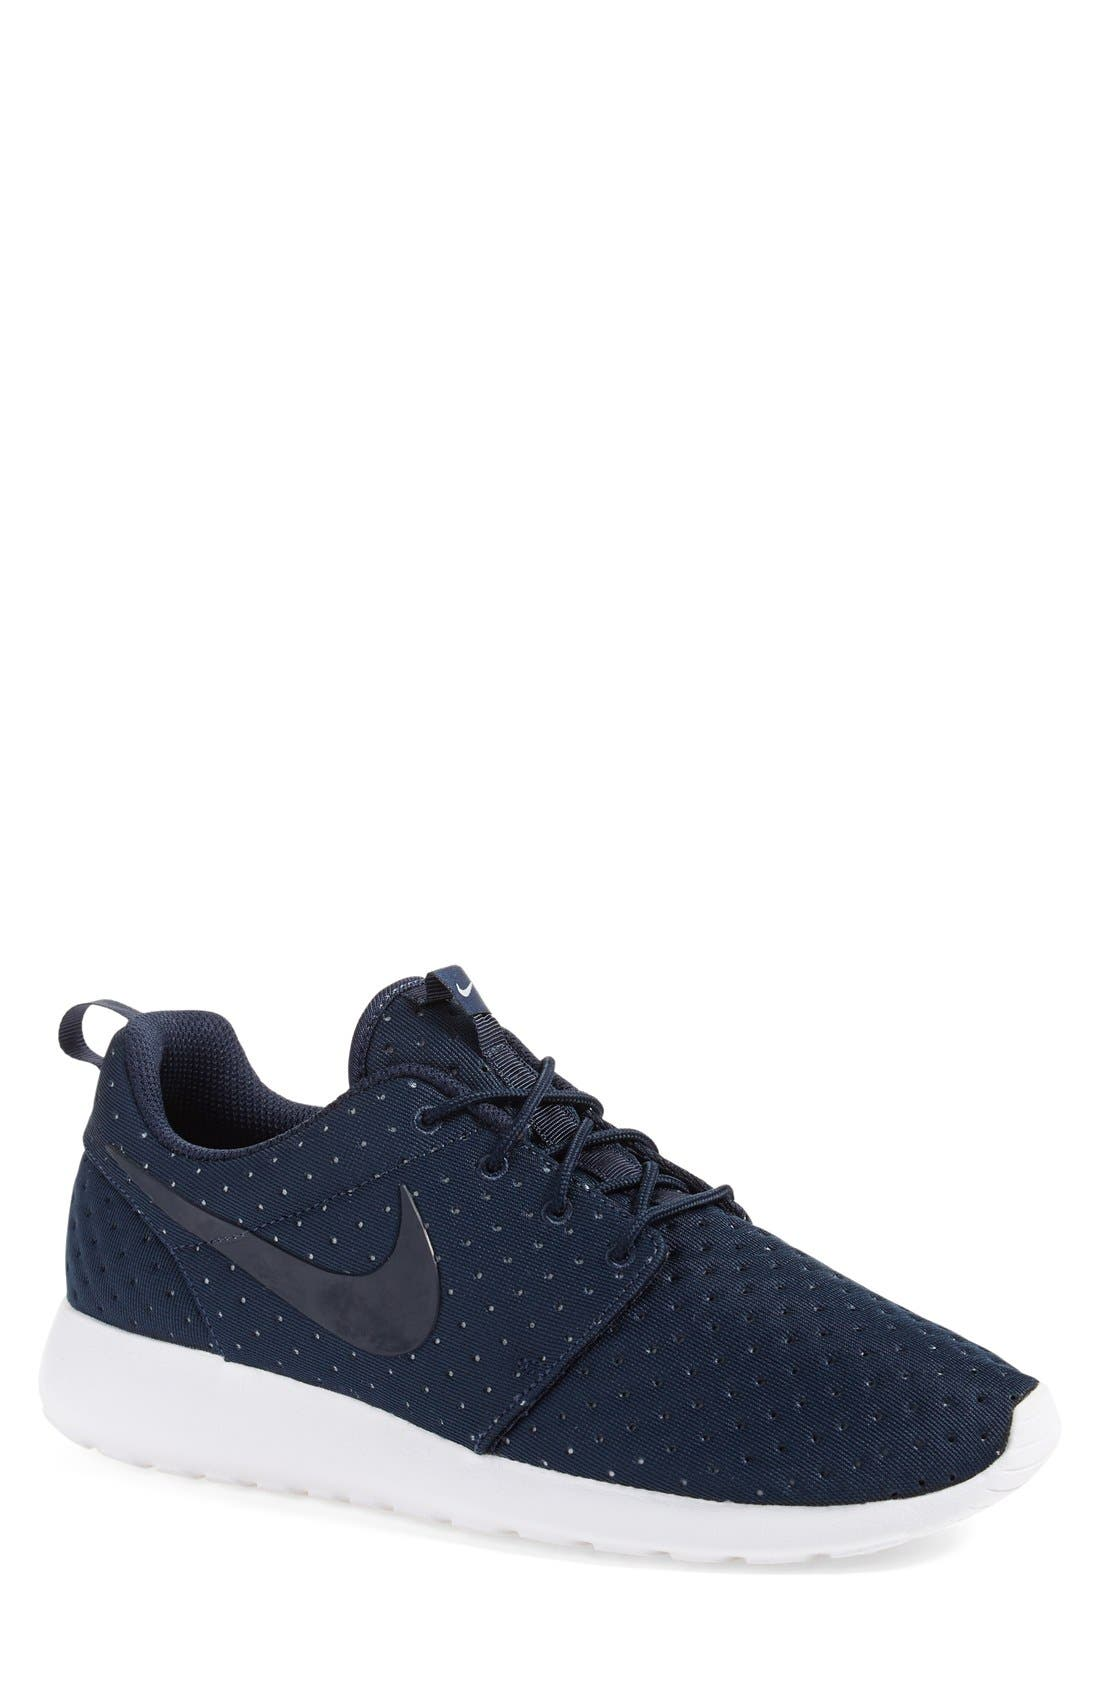 Main Image - Nike 'Roshe One SE' Sneaker (Men)